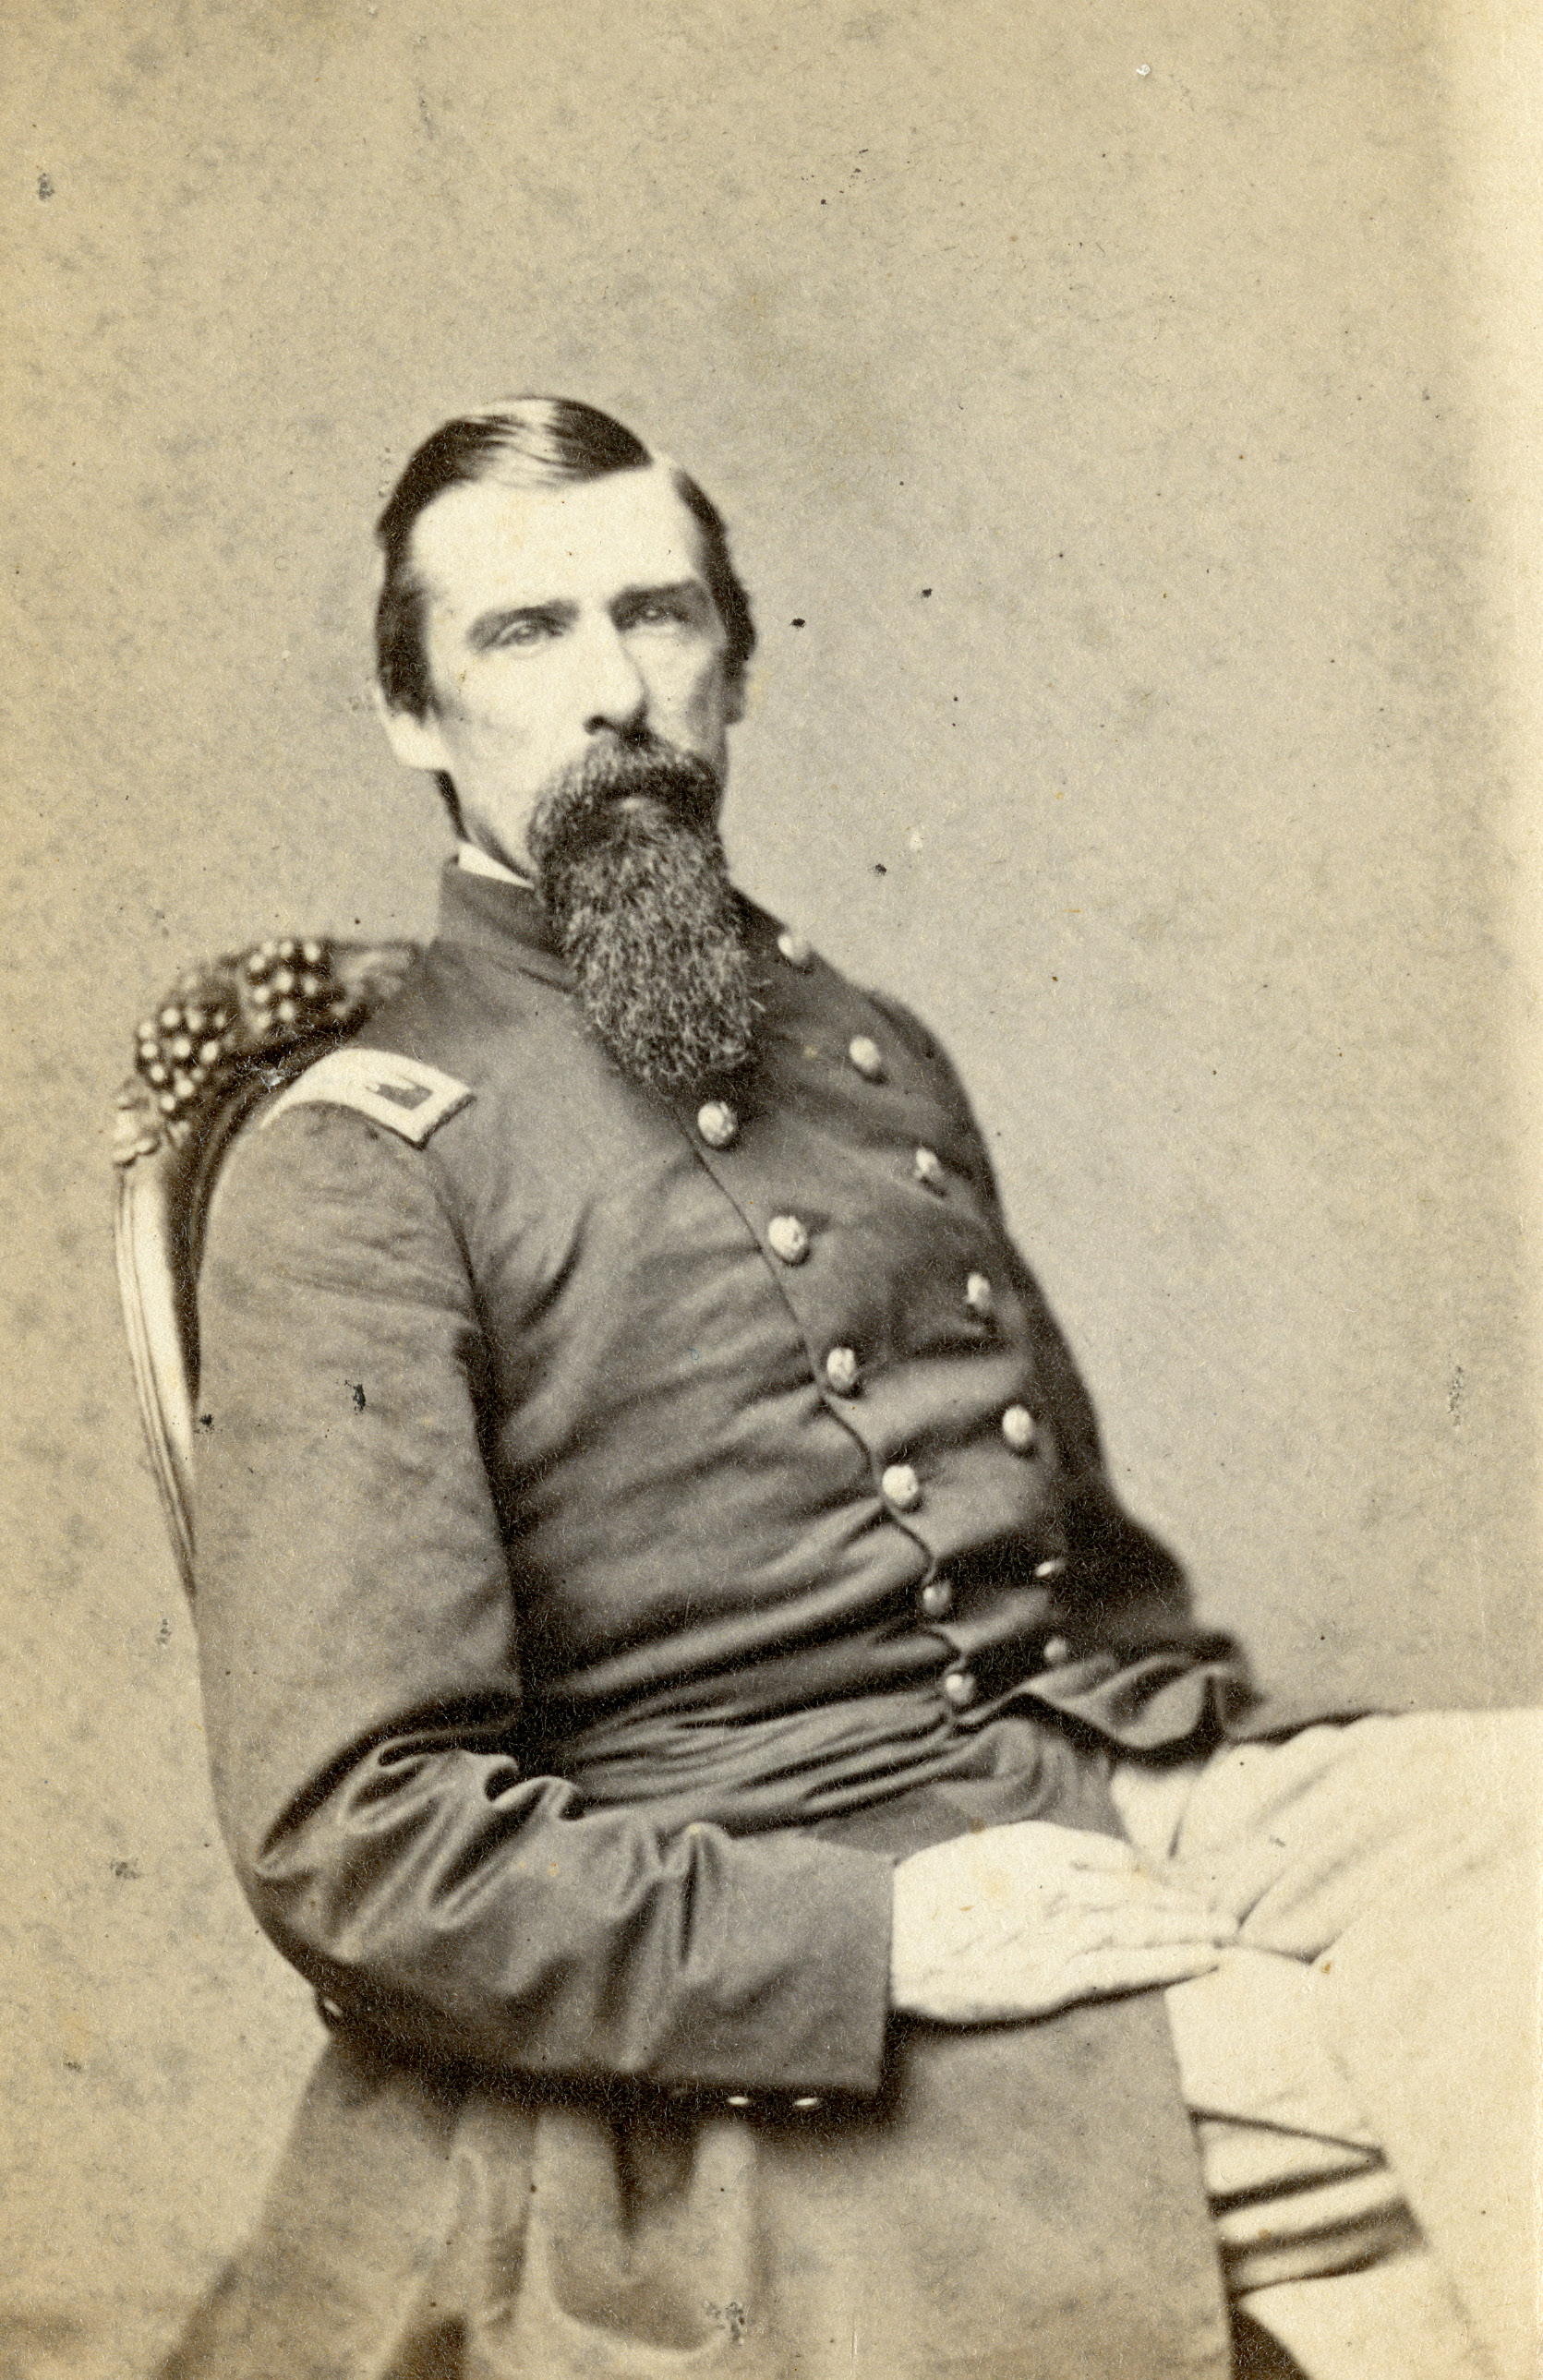 Carte De Visite Brigadier General Wild Was A USCT Commander Of Some Note Serving From First Bull Run The Major Battle Civil War